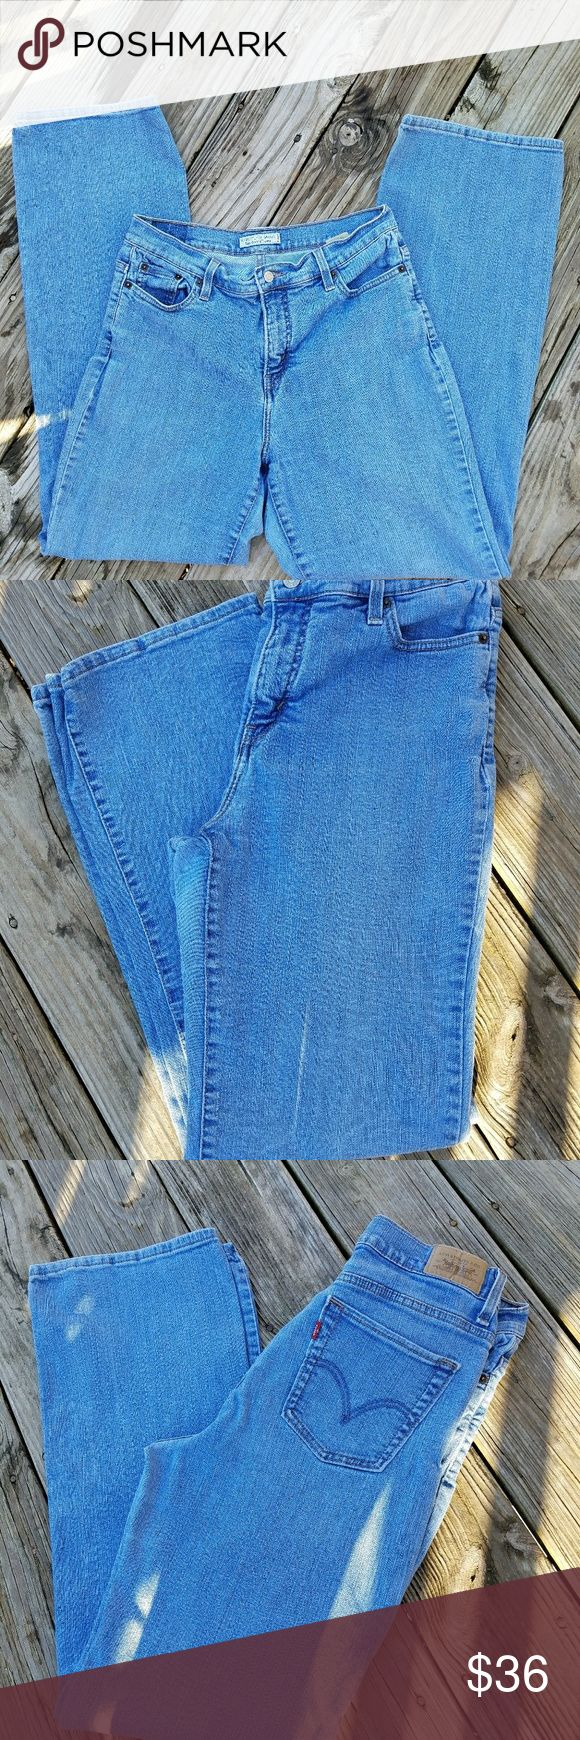 Levis 512 High Waisted Jeans Levis 512 Jeans Perfectly Slimming  Size 14 Long  High Waisted  Excellent Used Condition Levi's Jeans Boot Cut